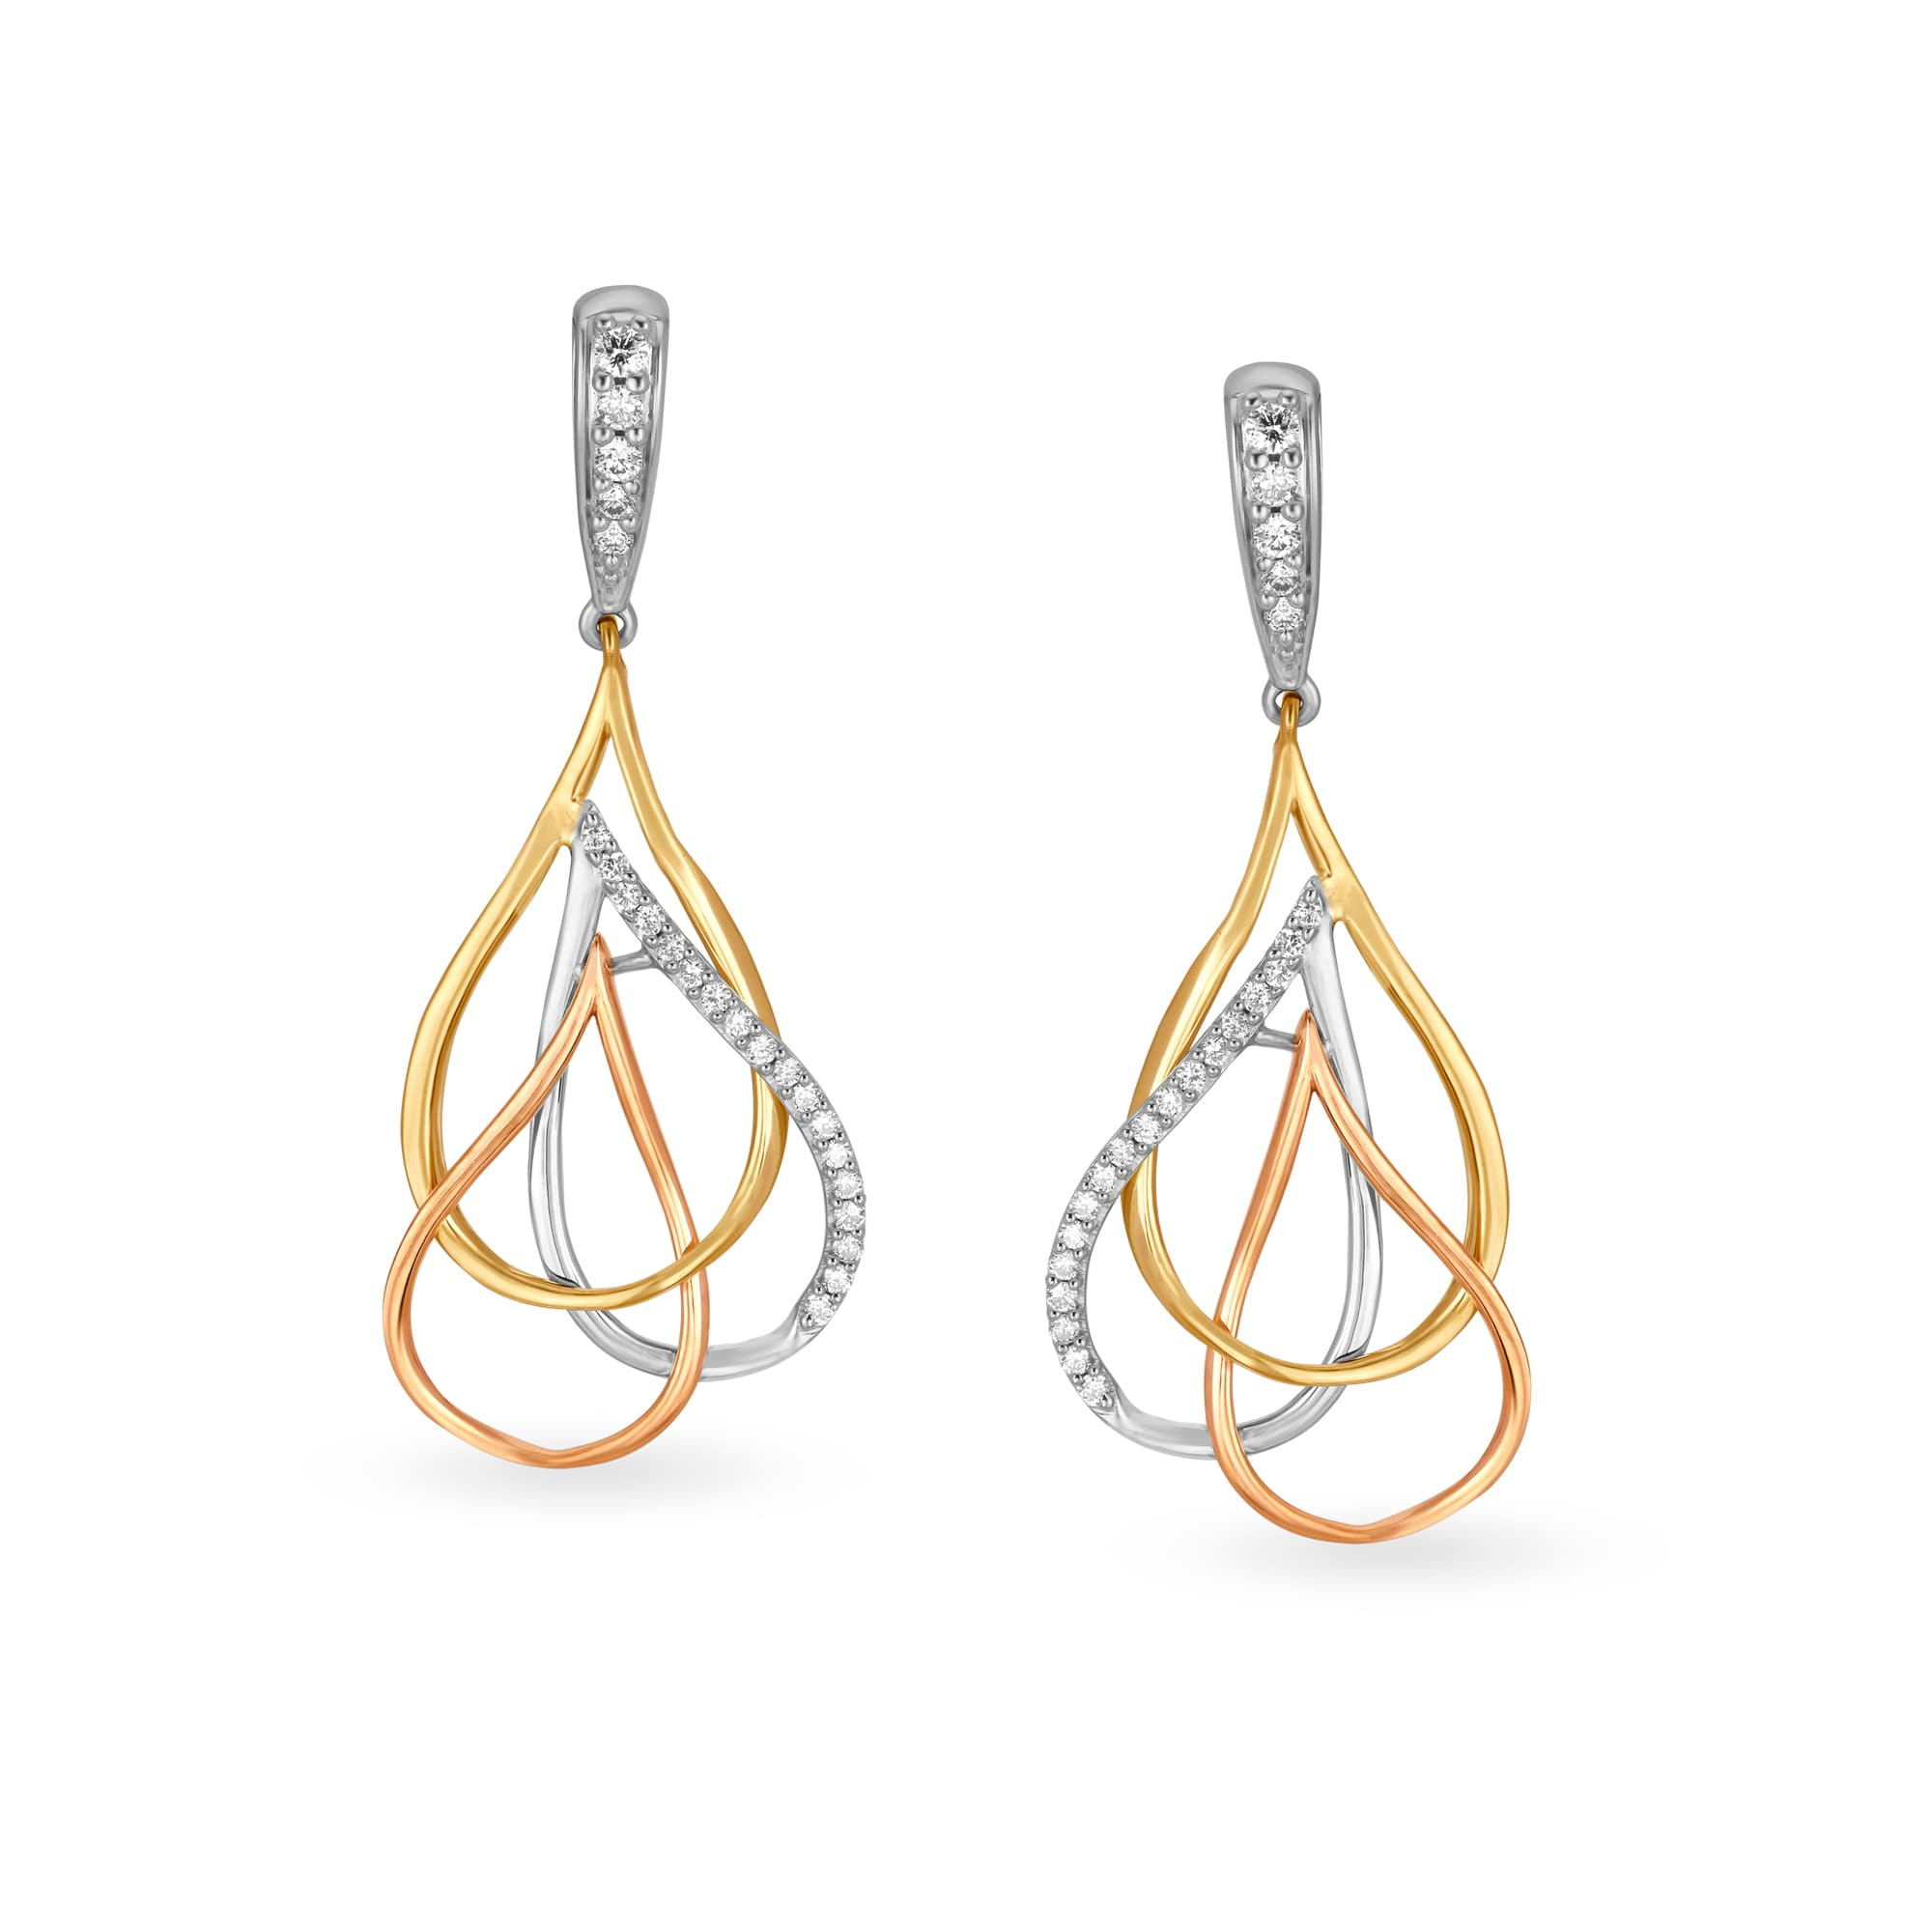 211a94d6a50a6 Mia by Tanishq 14KT Yellow Gold Diamond Drop Earrings with Teardrop Design